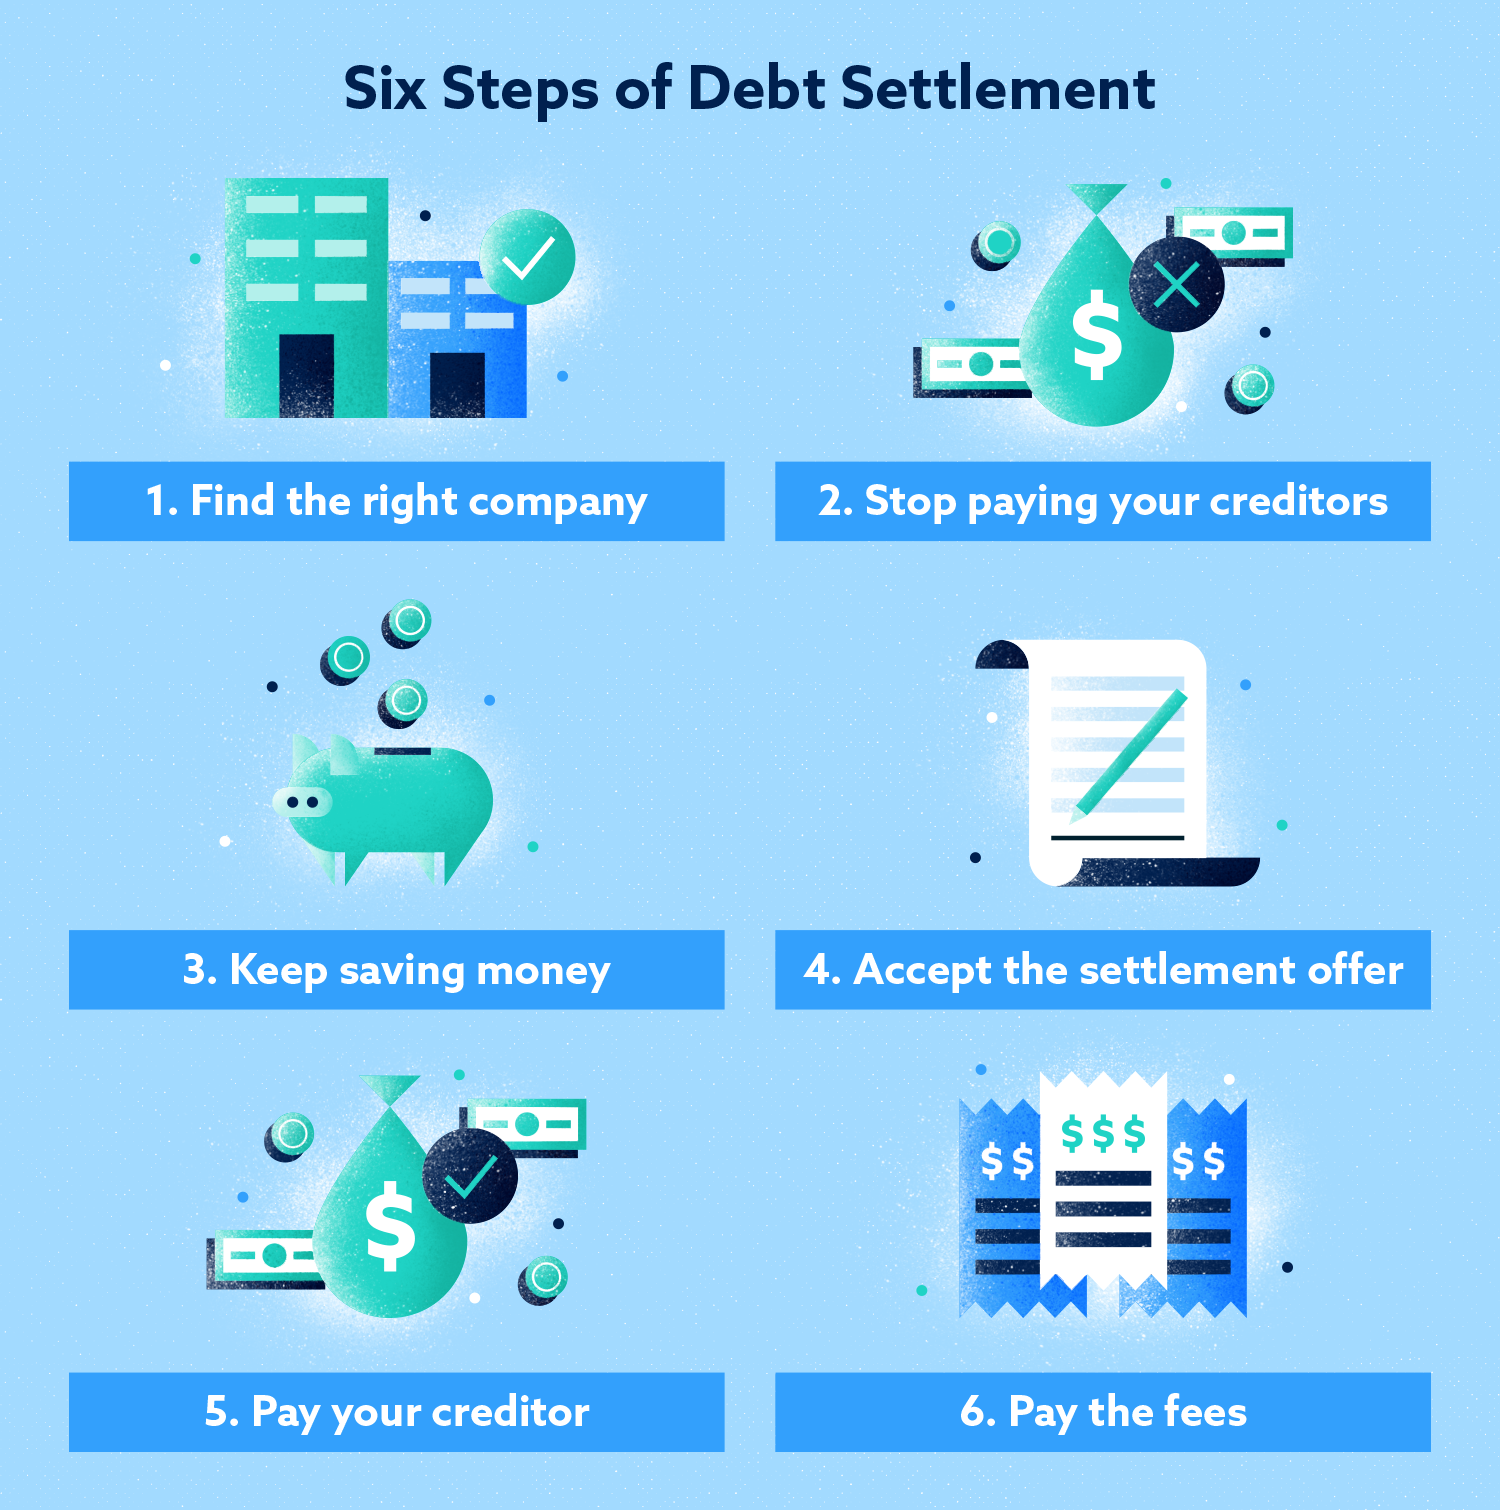 Six Steps of Debt Settlement